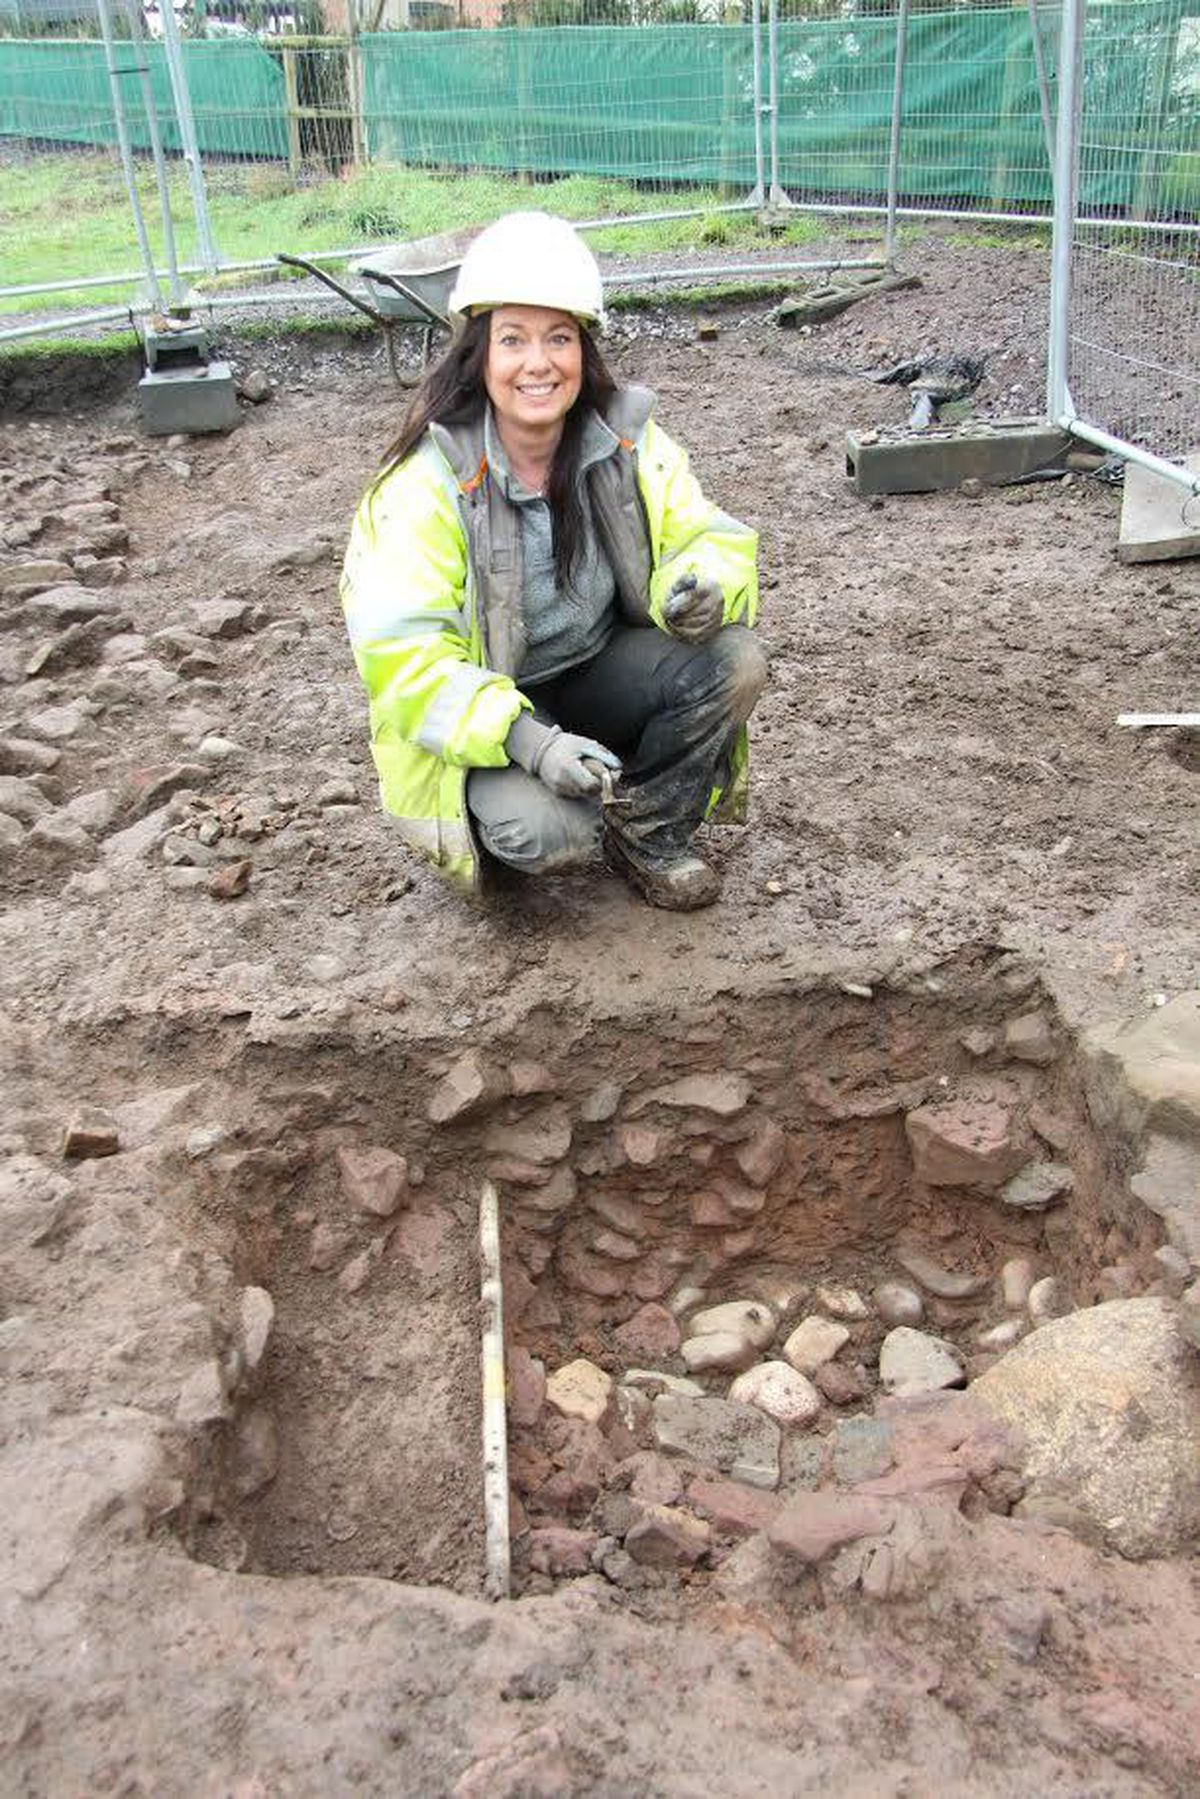 Archaeologist Janey Green